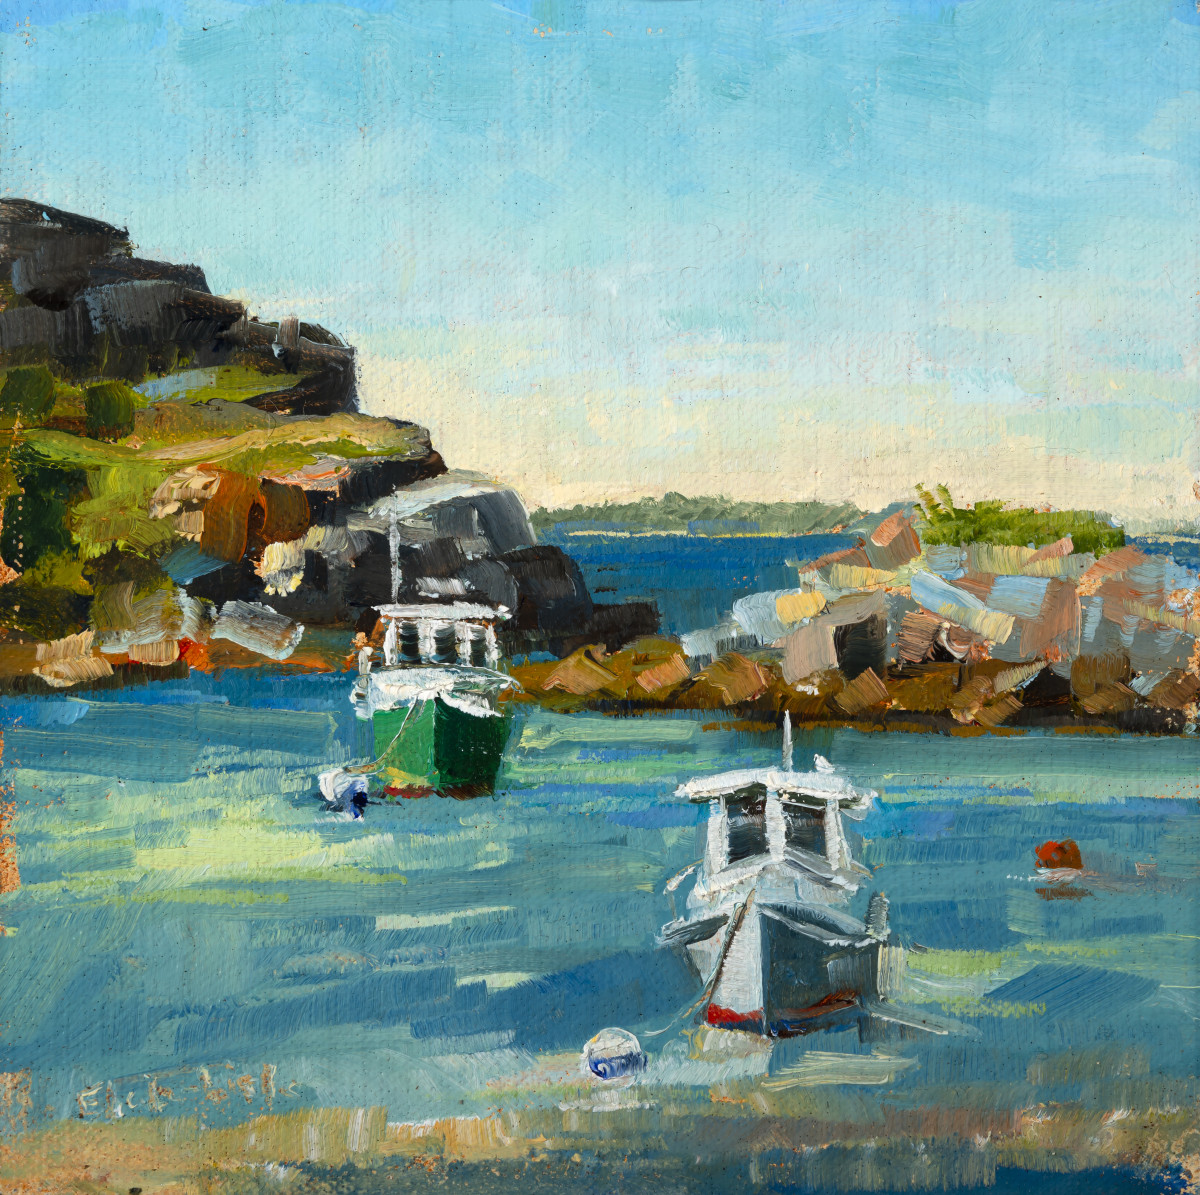 Two Boats in Harbor by Elaine Lisle